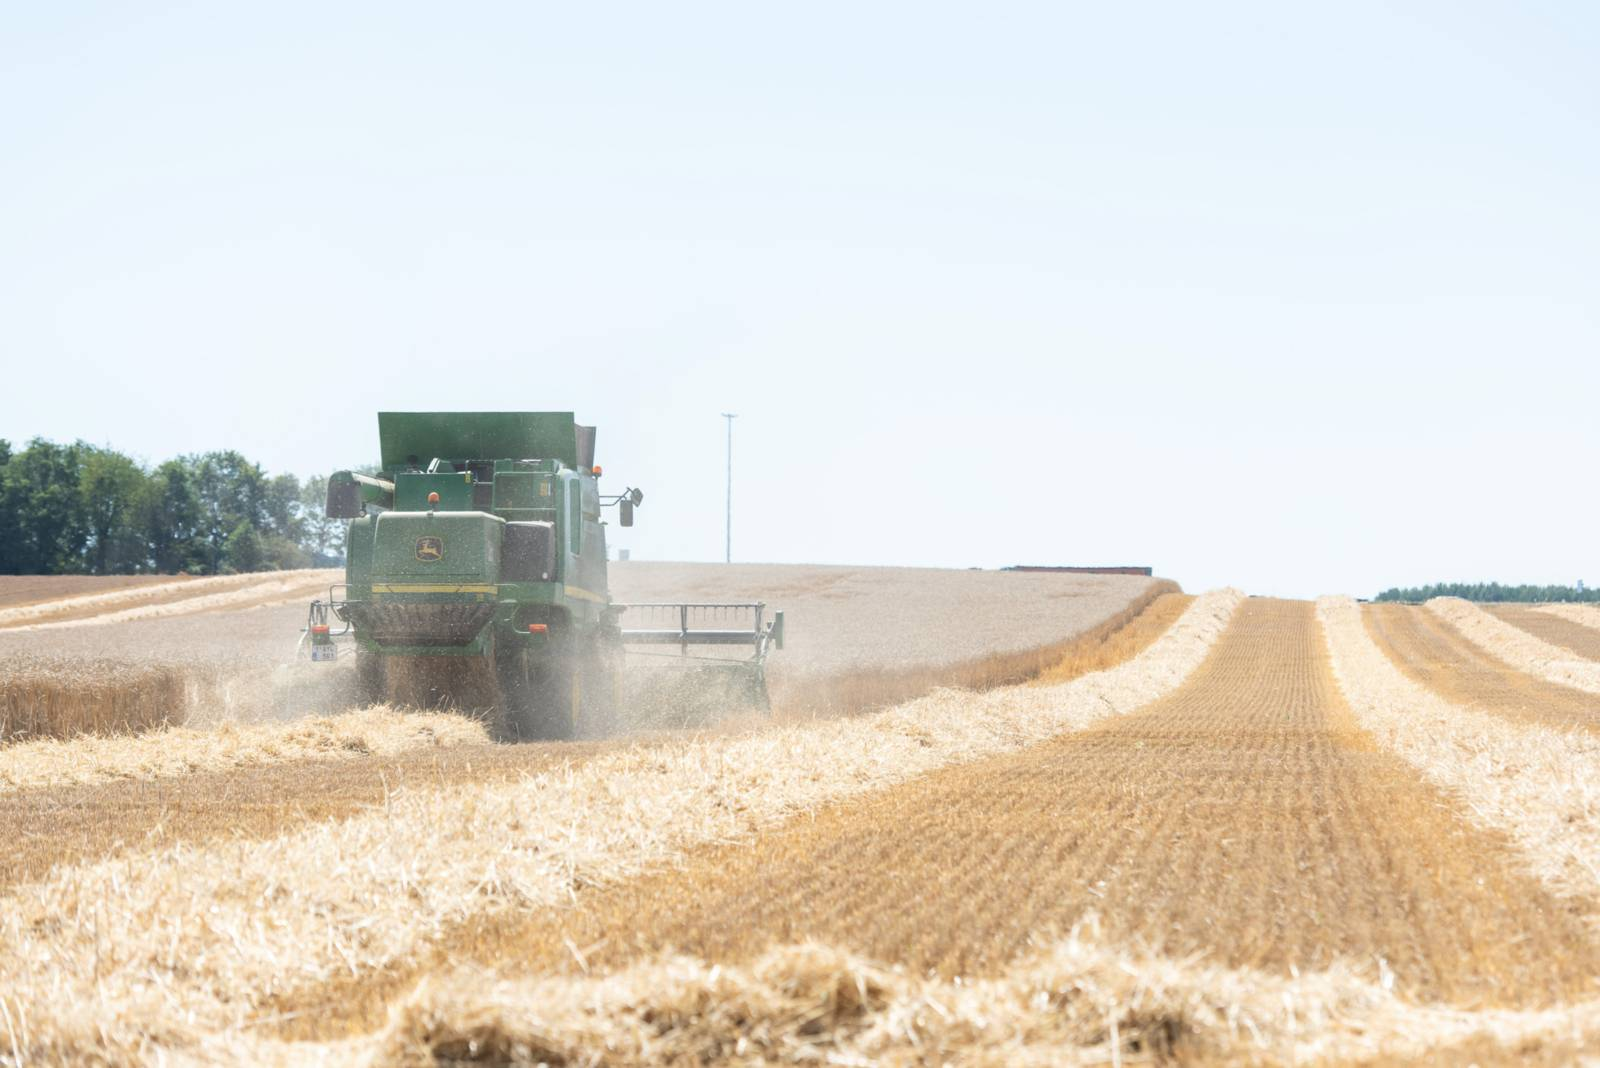 A combine harvesting the wheat